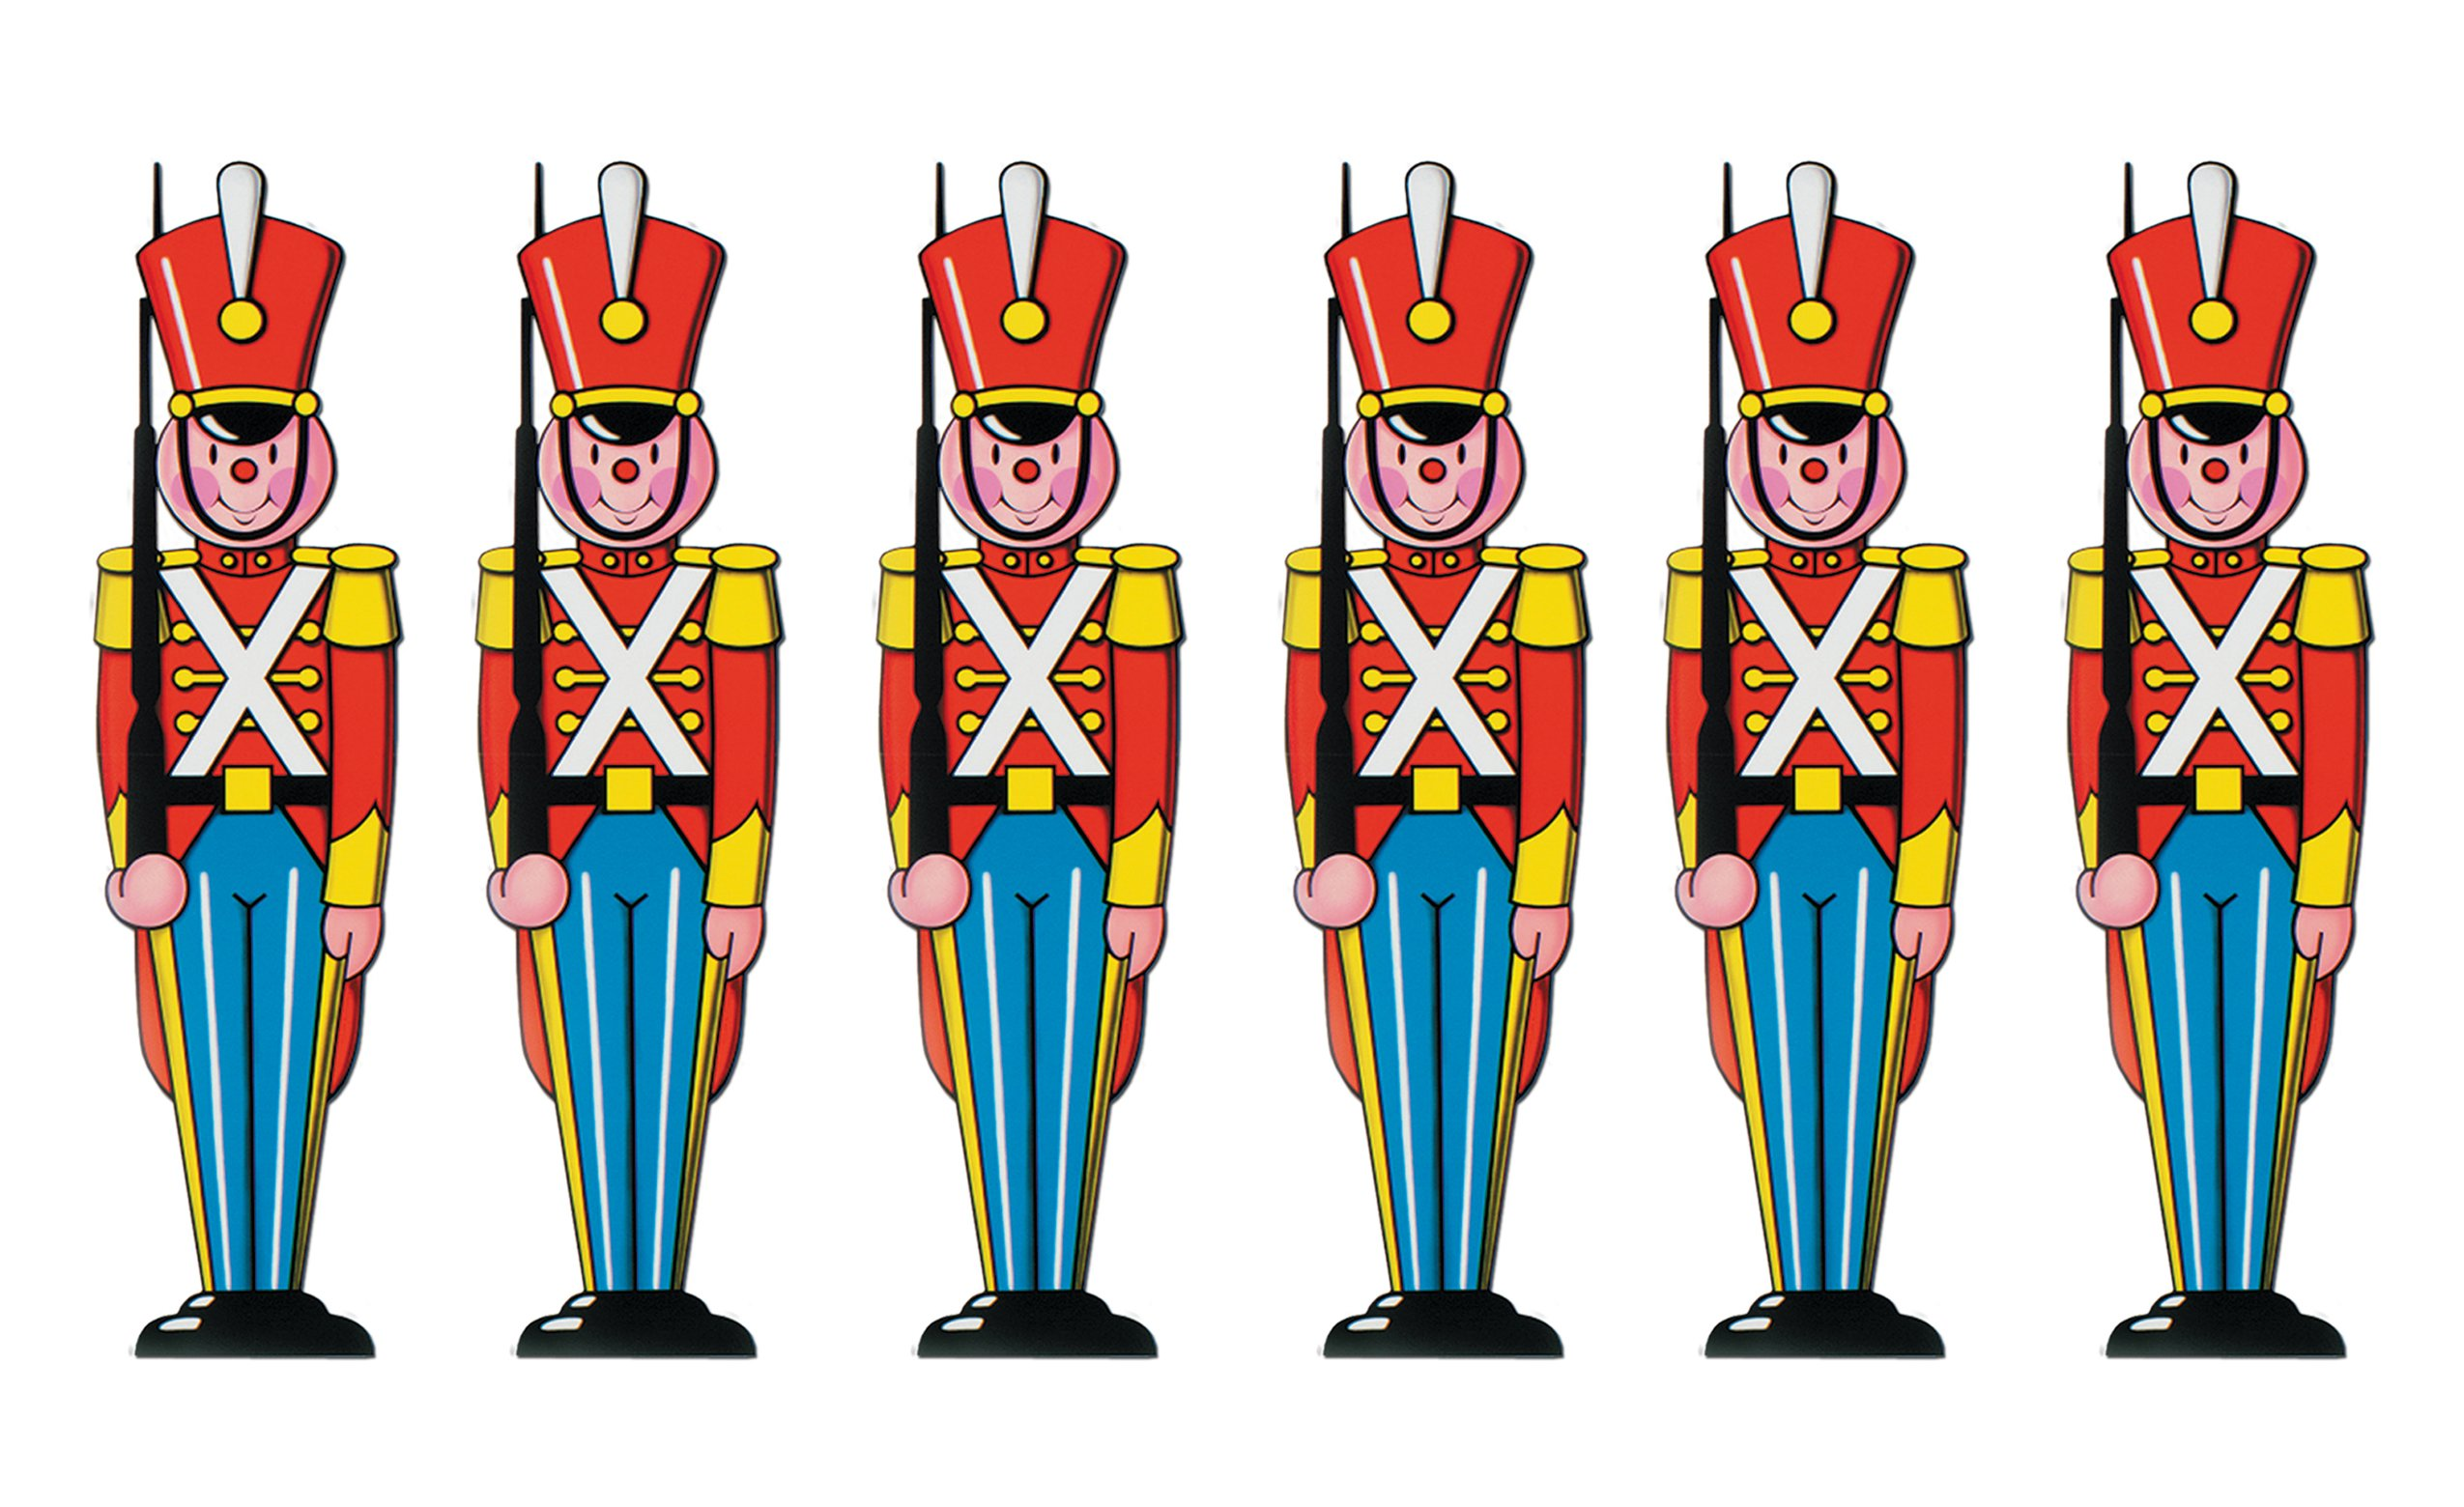 Beistle S22786AZ6 Toy Soldier Cutouts 35.5'', Pack of 6 by Beistle